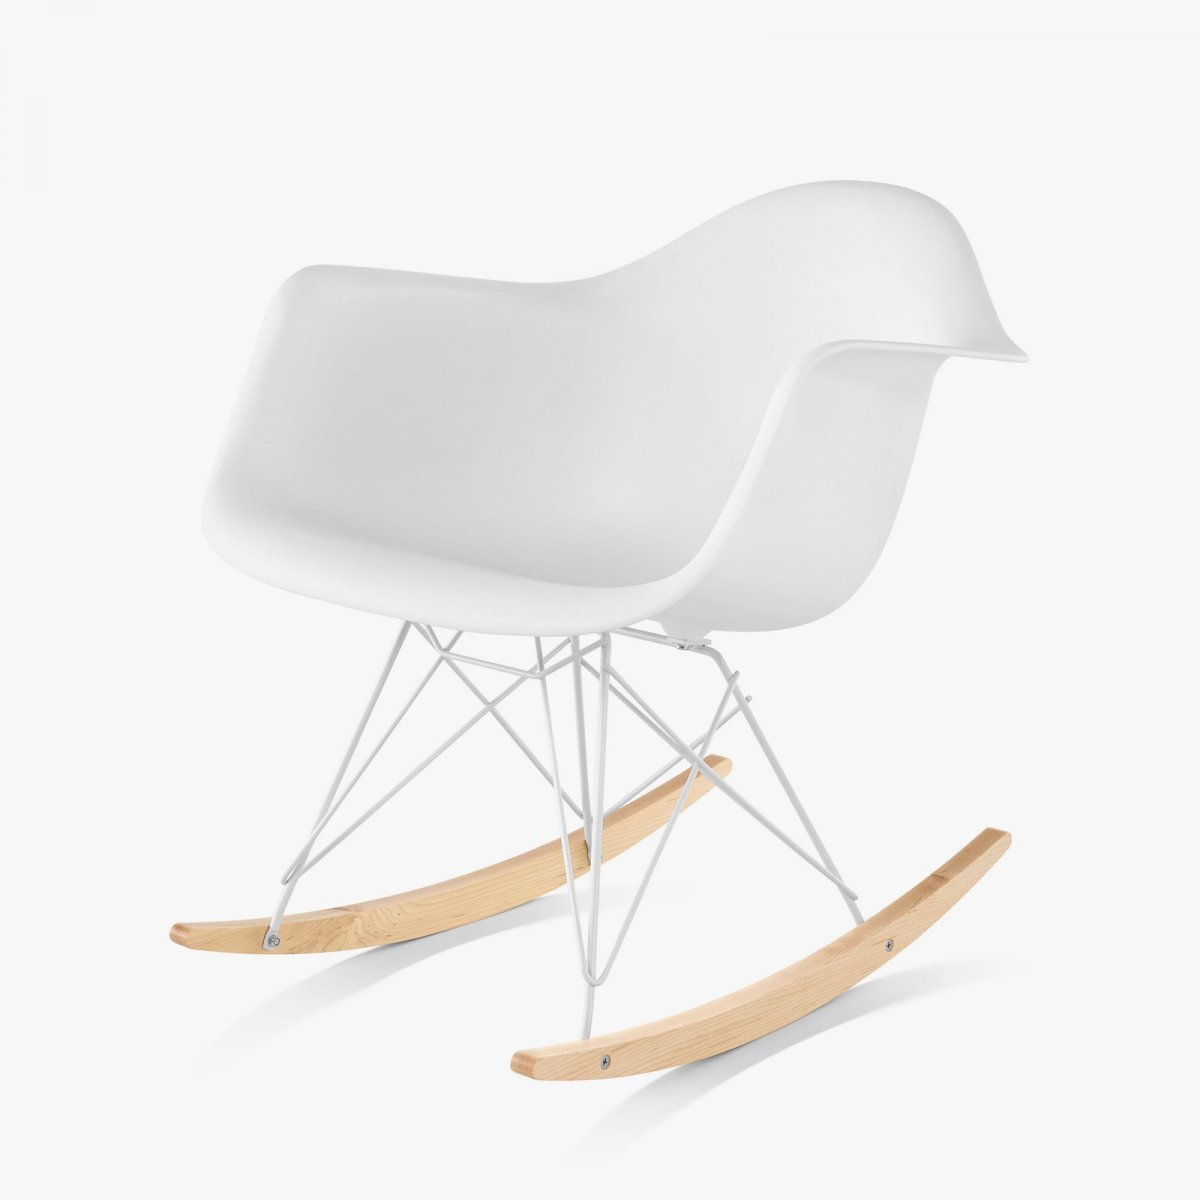 Eames Molded Plastic Armchair Rocker Base, white.